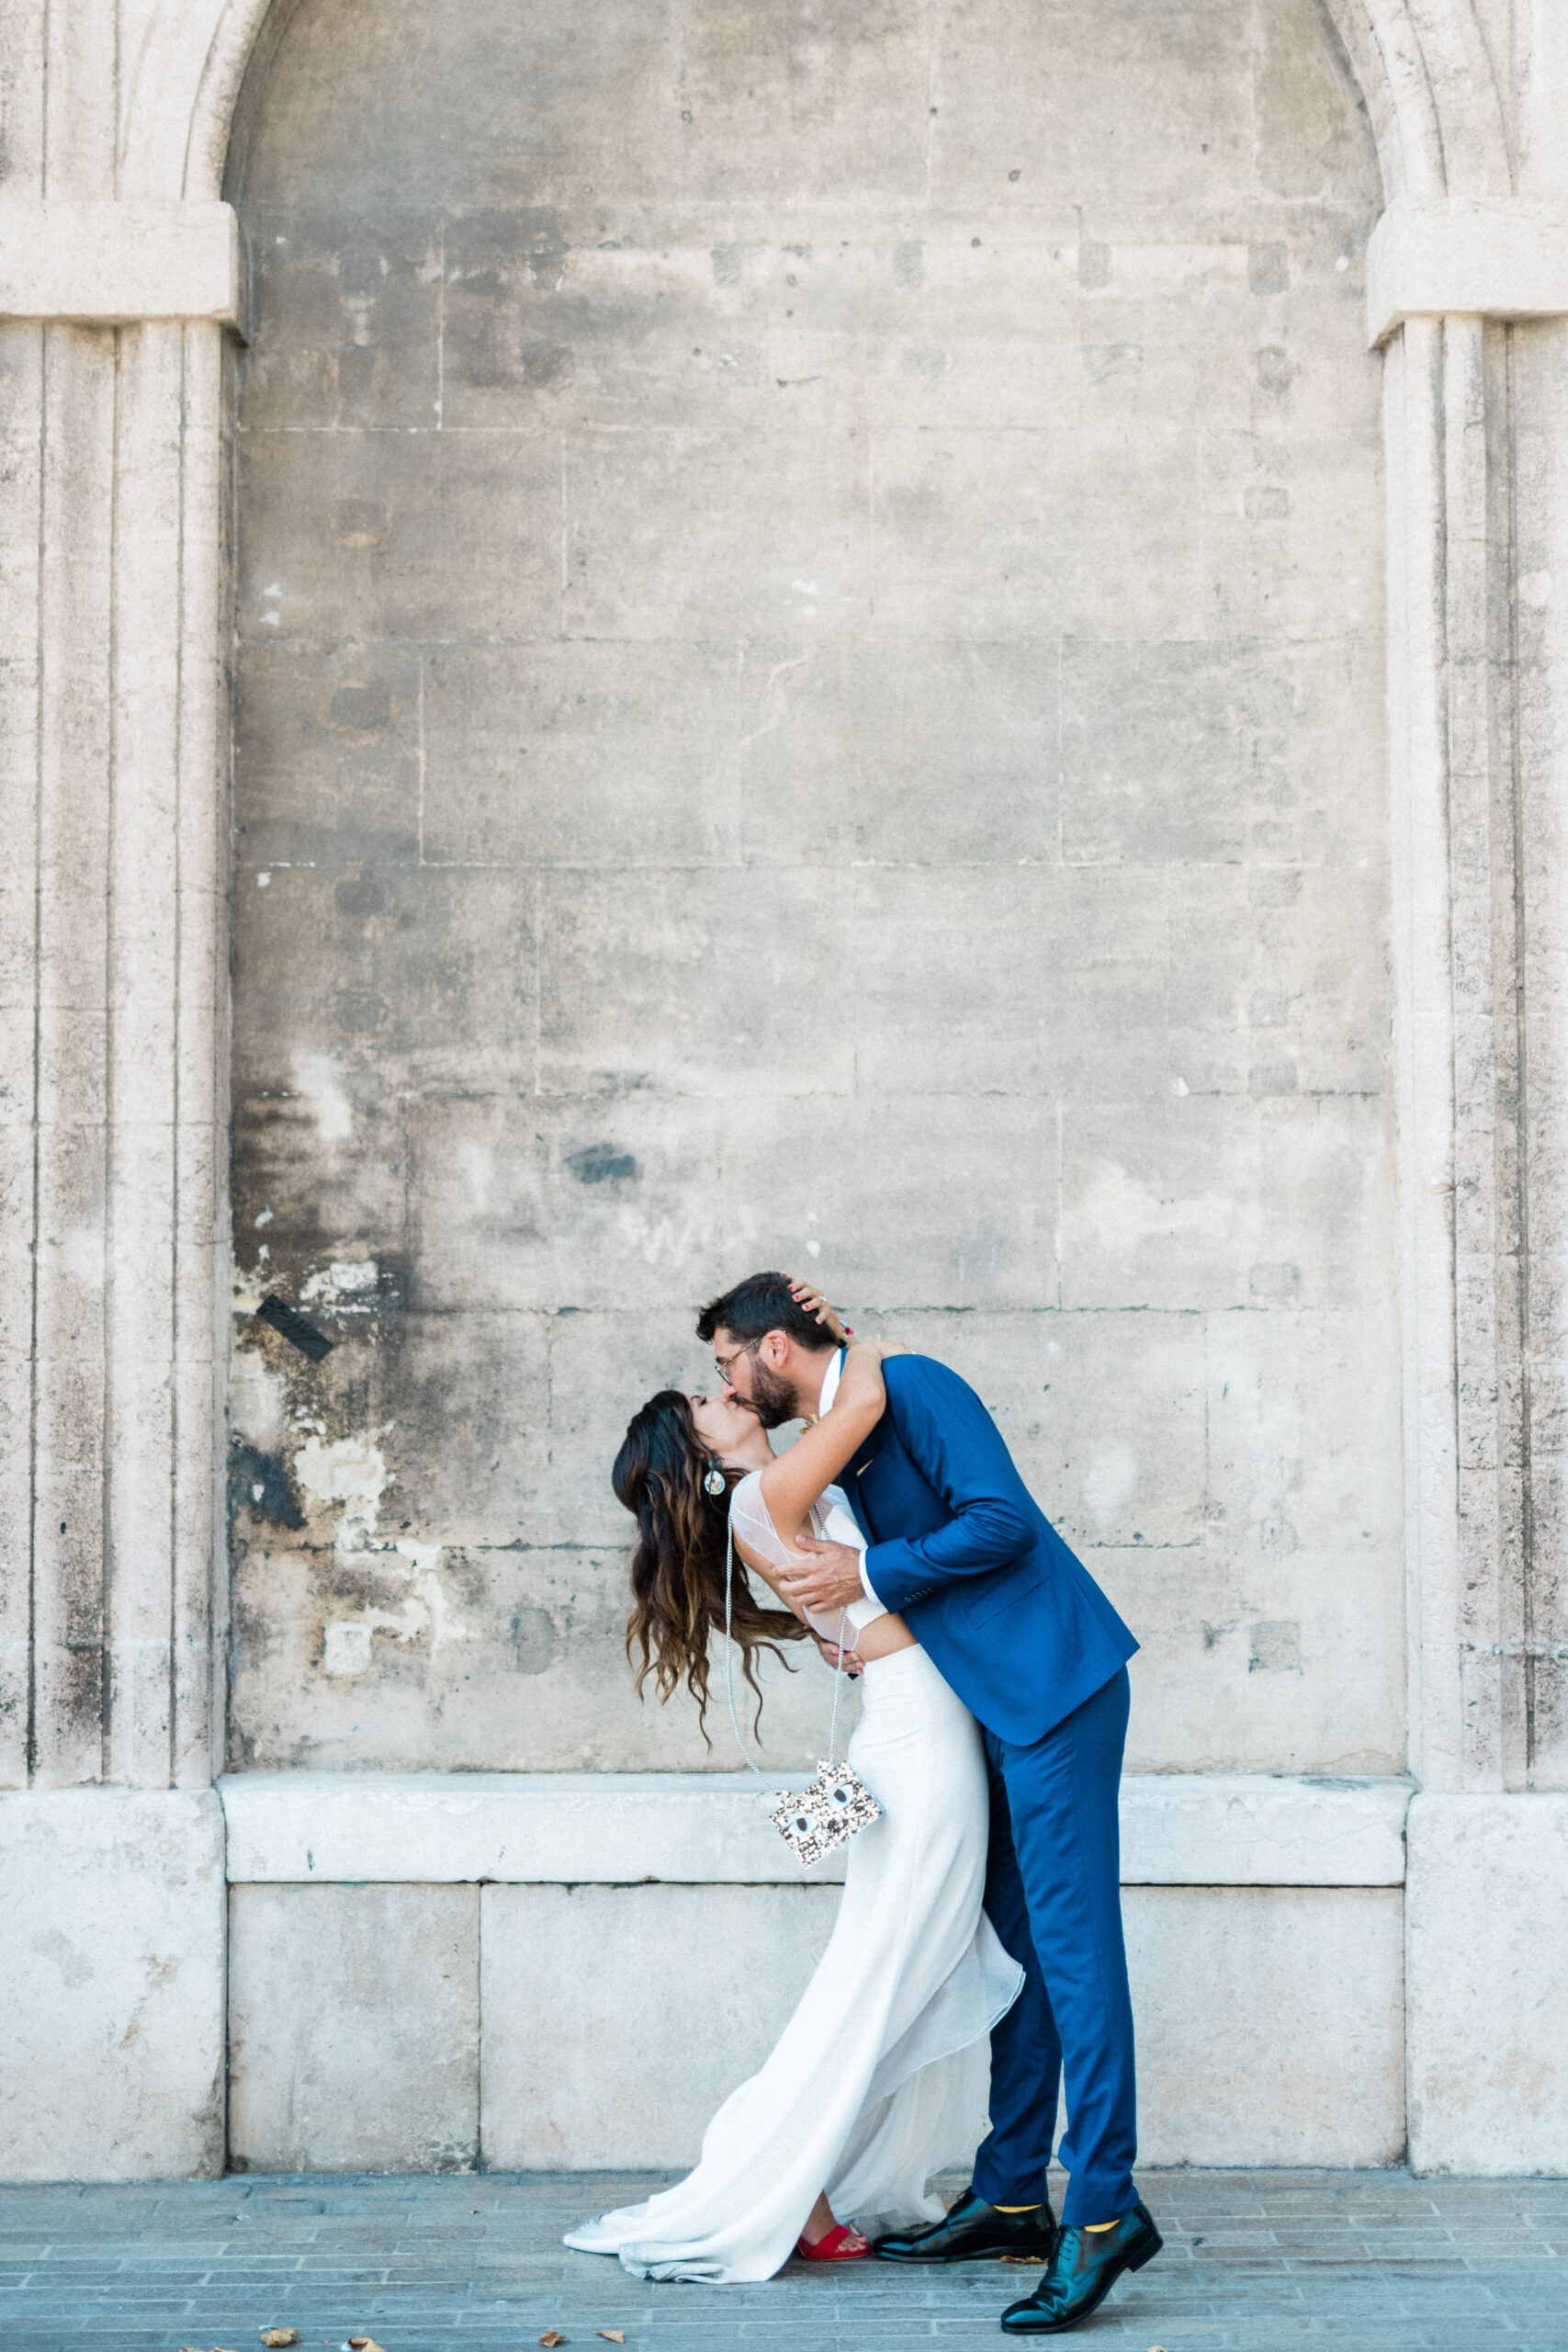 matthieu kobi photographe wedding lifestyle